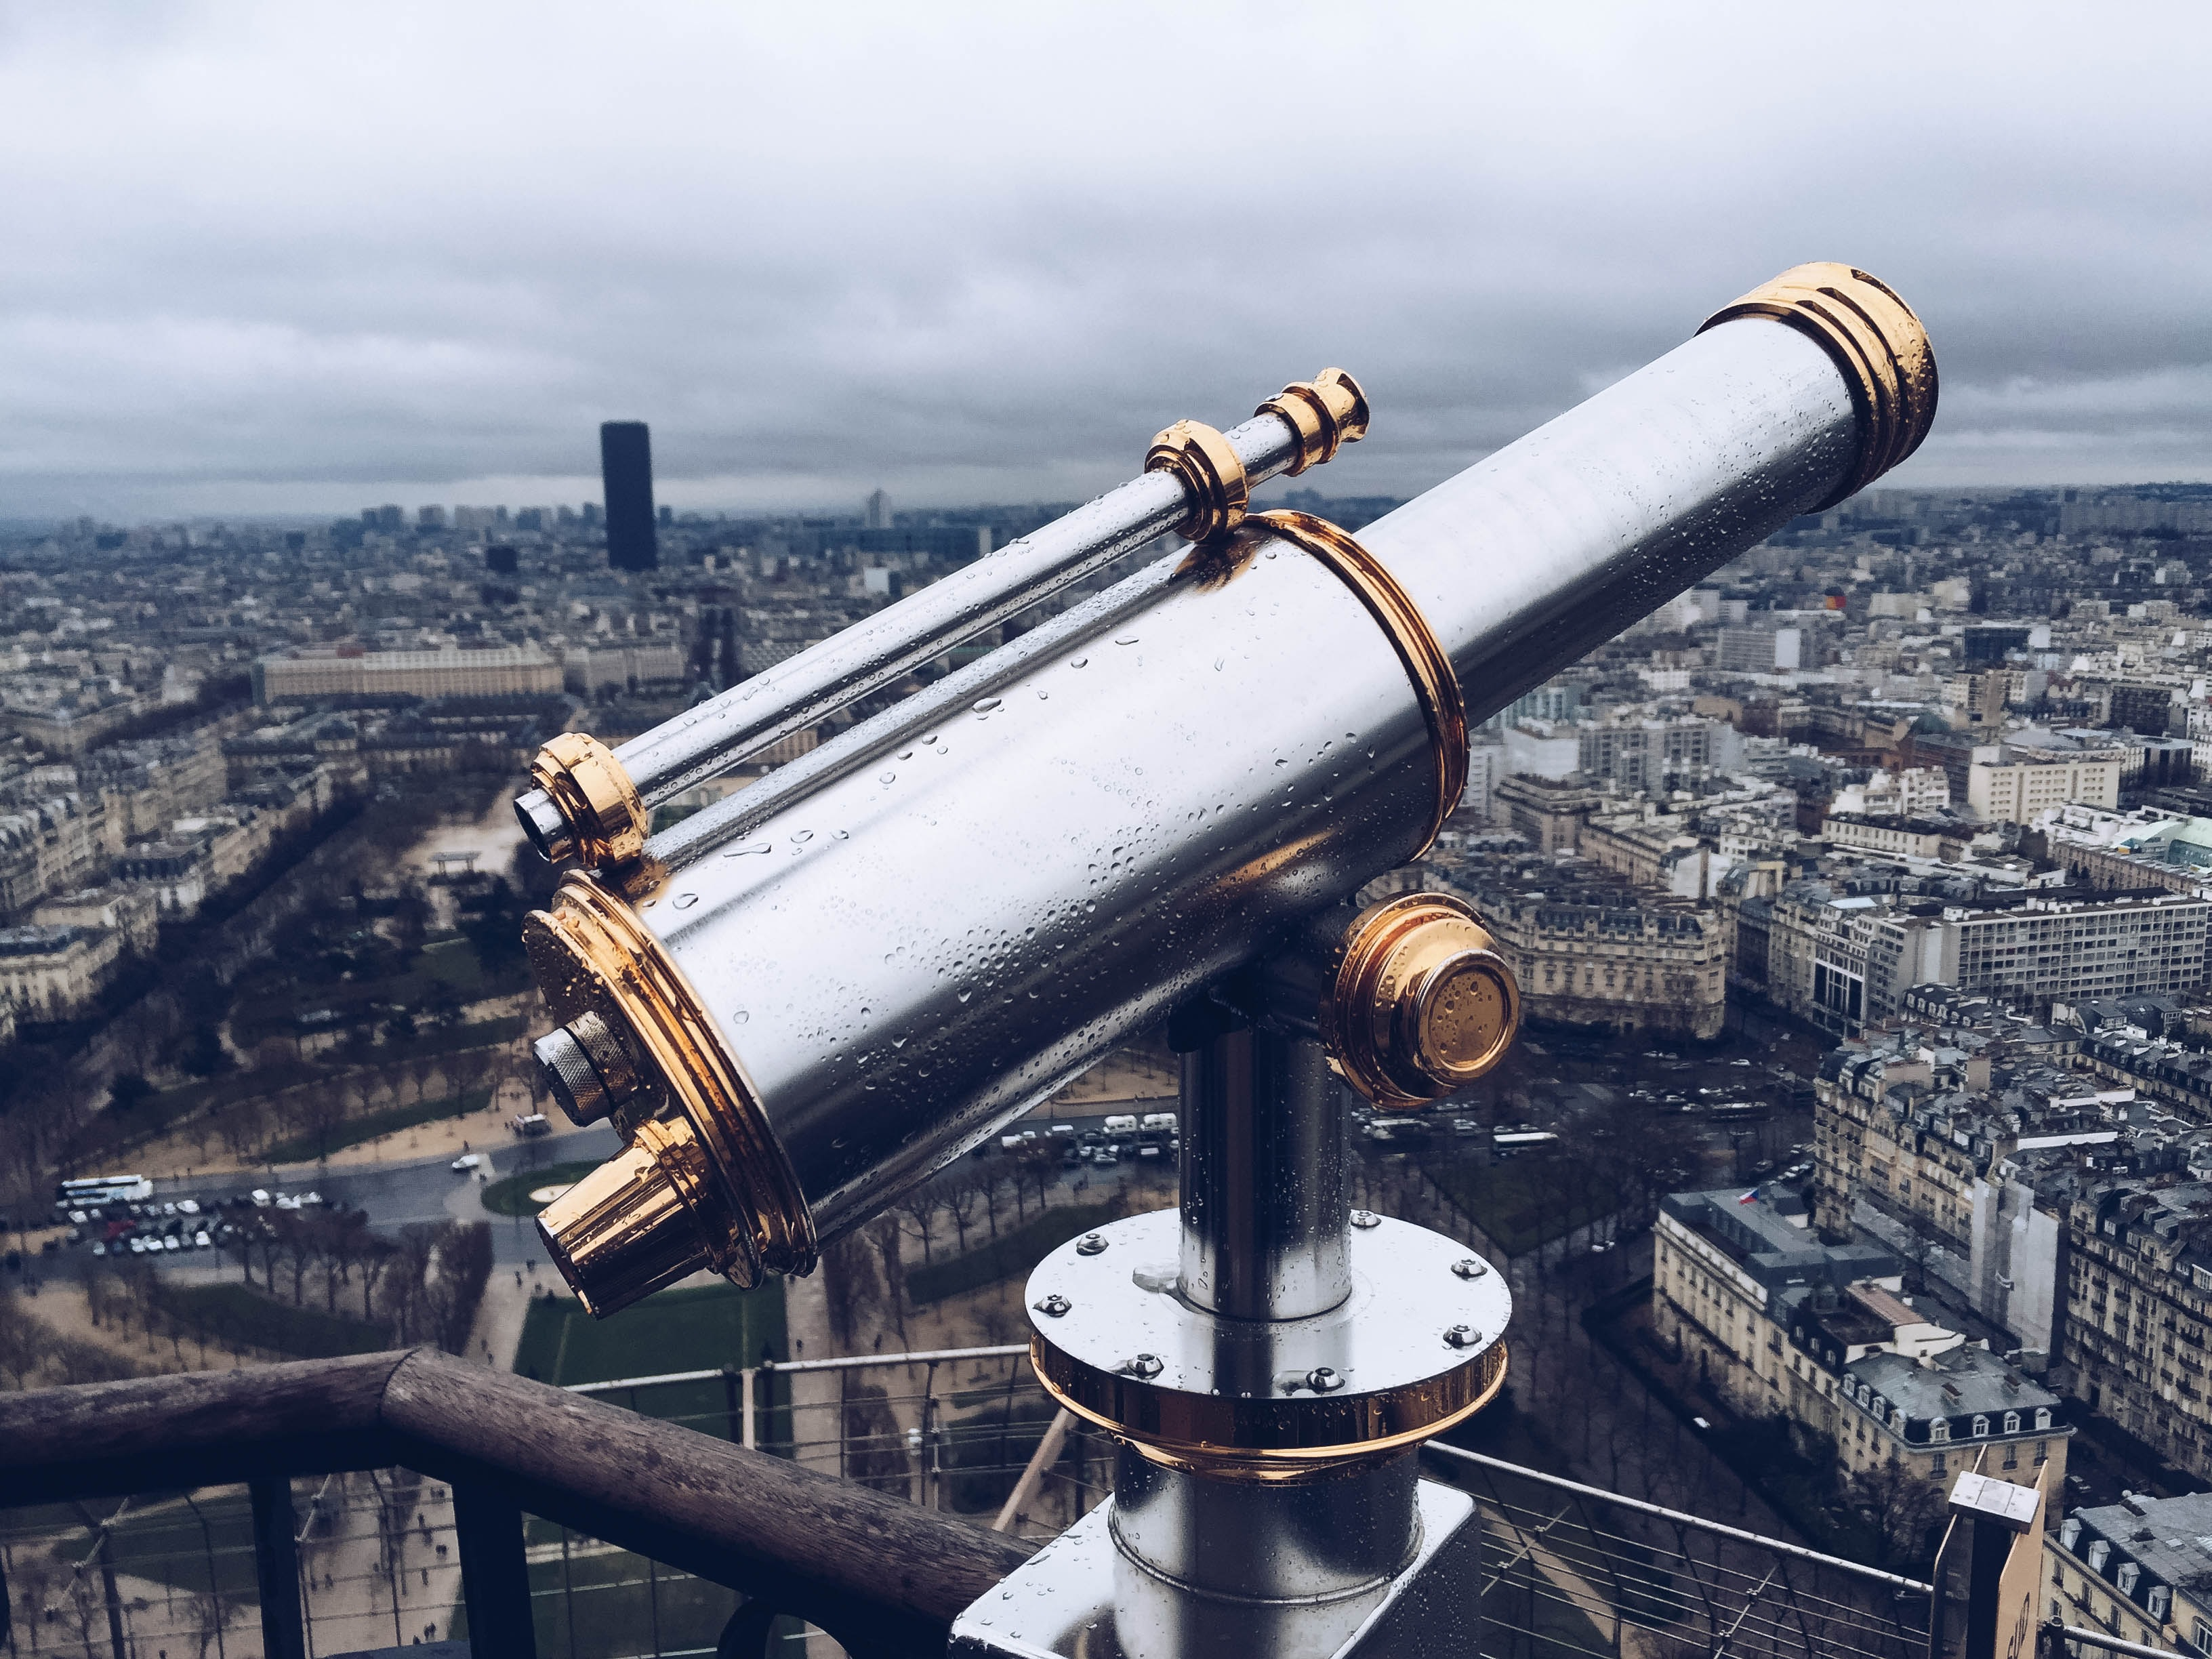 Telescope viewfinder on top of the Eiffel Tower in the rain.